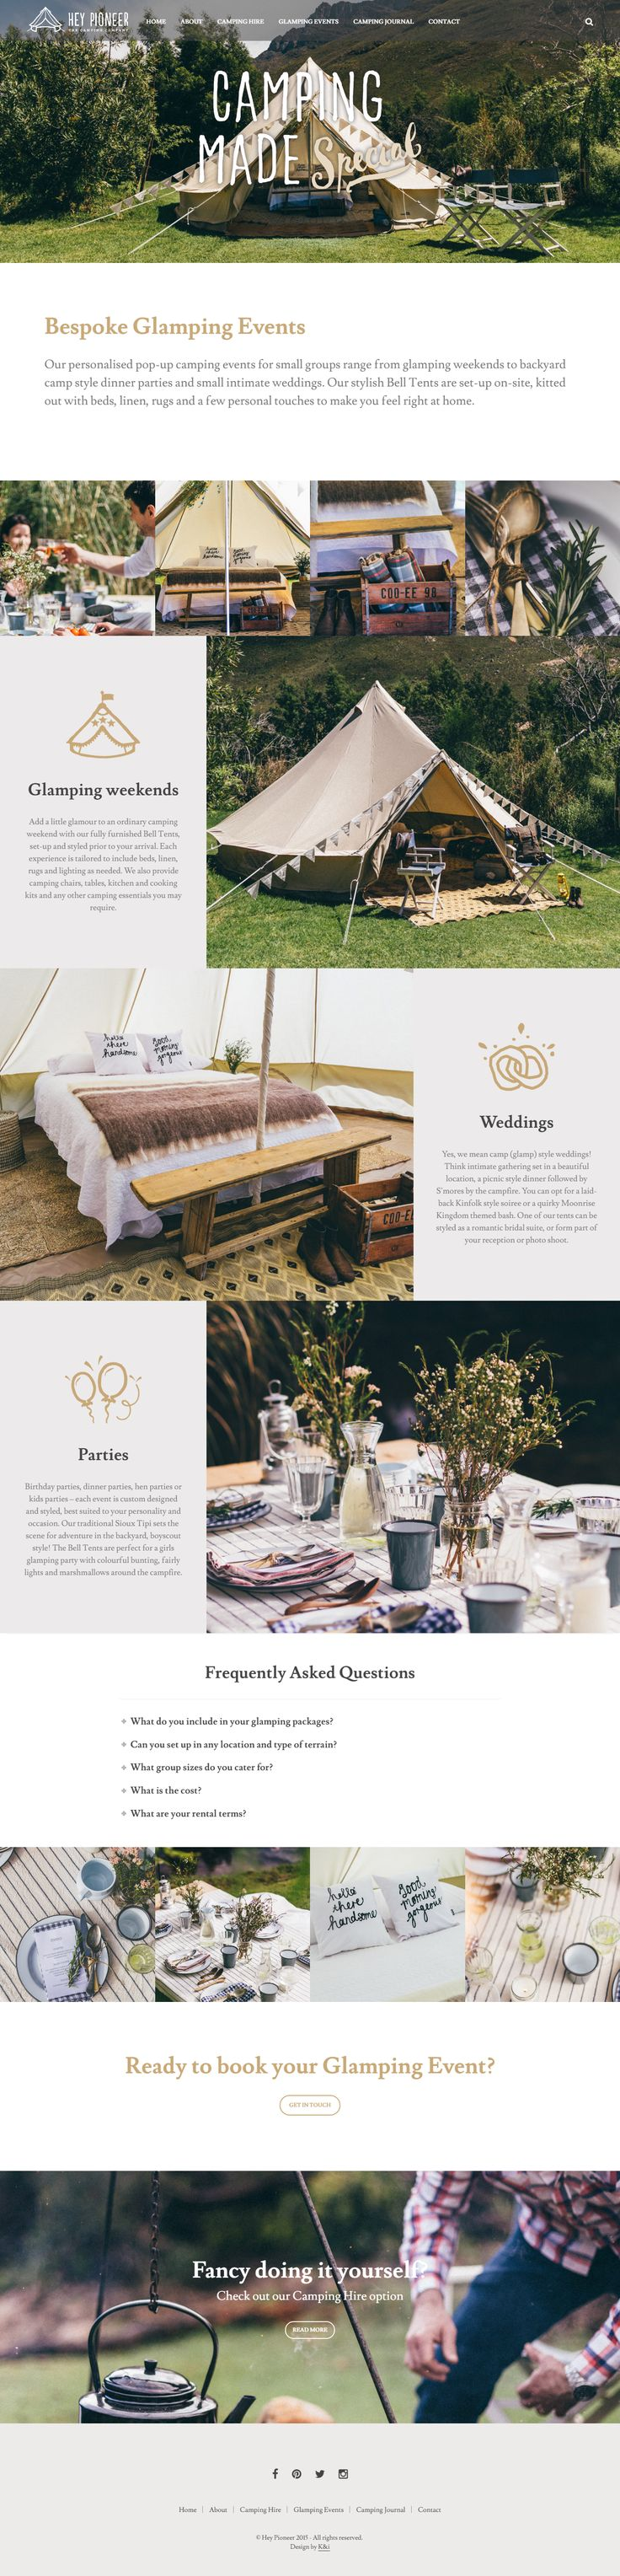 Amazing site powered by Shopkeeper WordPress theme for heypioneer.co.za #wordpress #webdesign #branding #glaming #campingsite #bestwebsites https://www.getbowtied.com/hey-pioneer-glamping-company-customer-stories-shopkeeper/?utm_source=pinterest.com&utm_medium=social&utm_content=hey-pioneer&utm_campaign=customer-stories